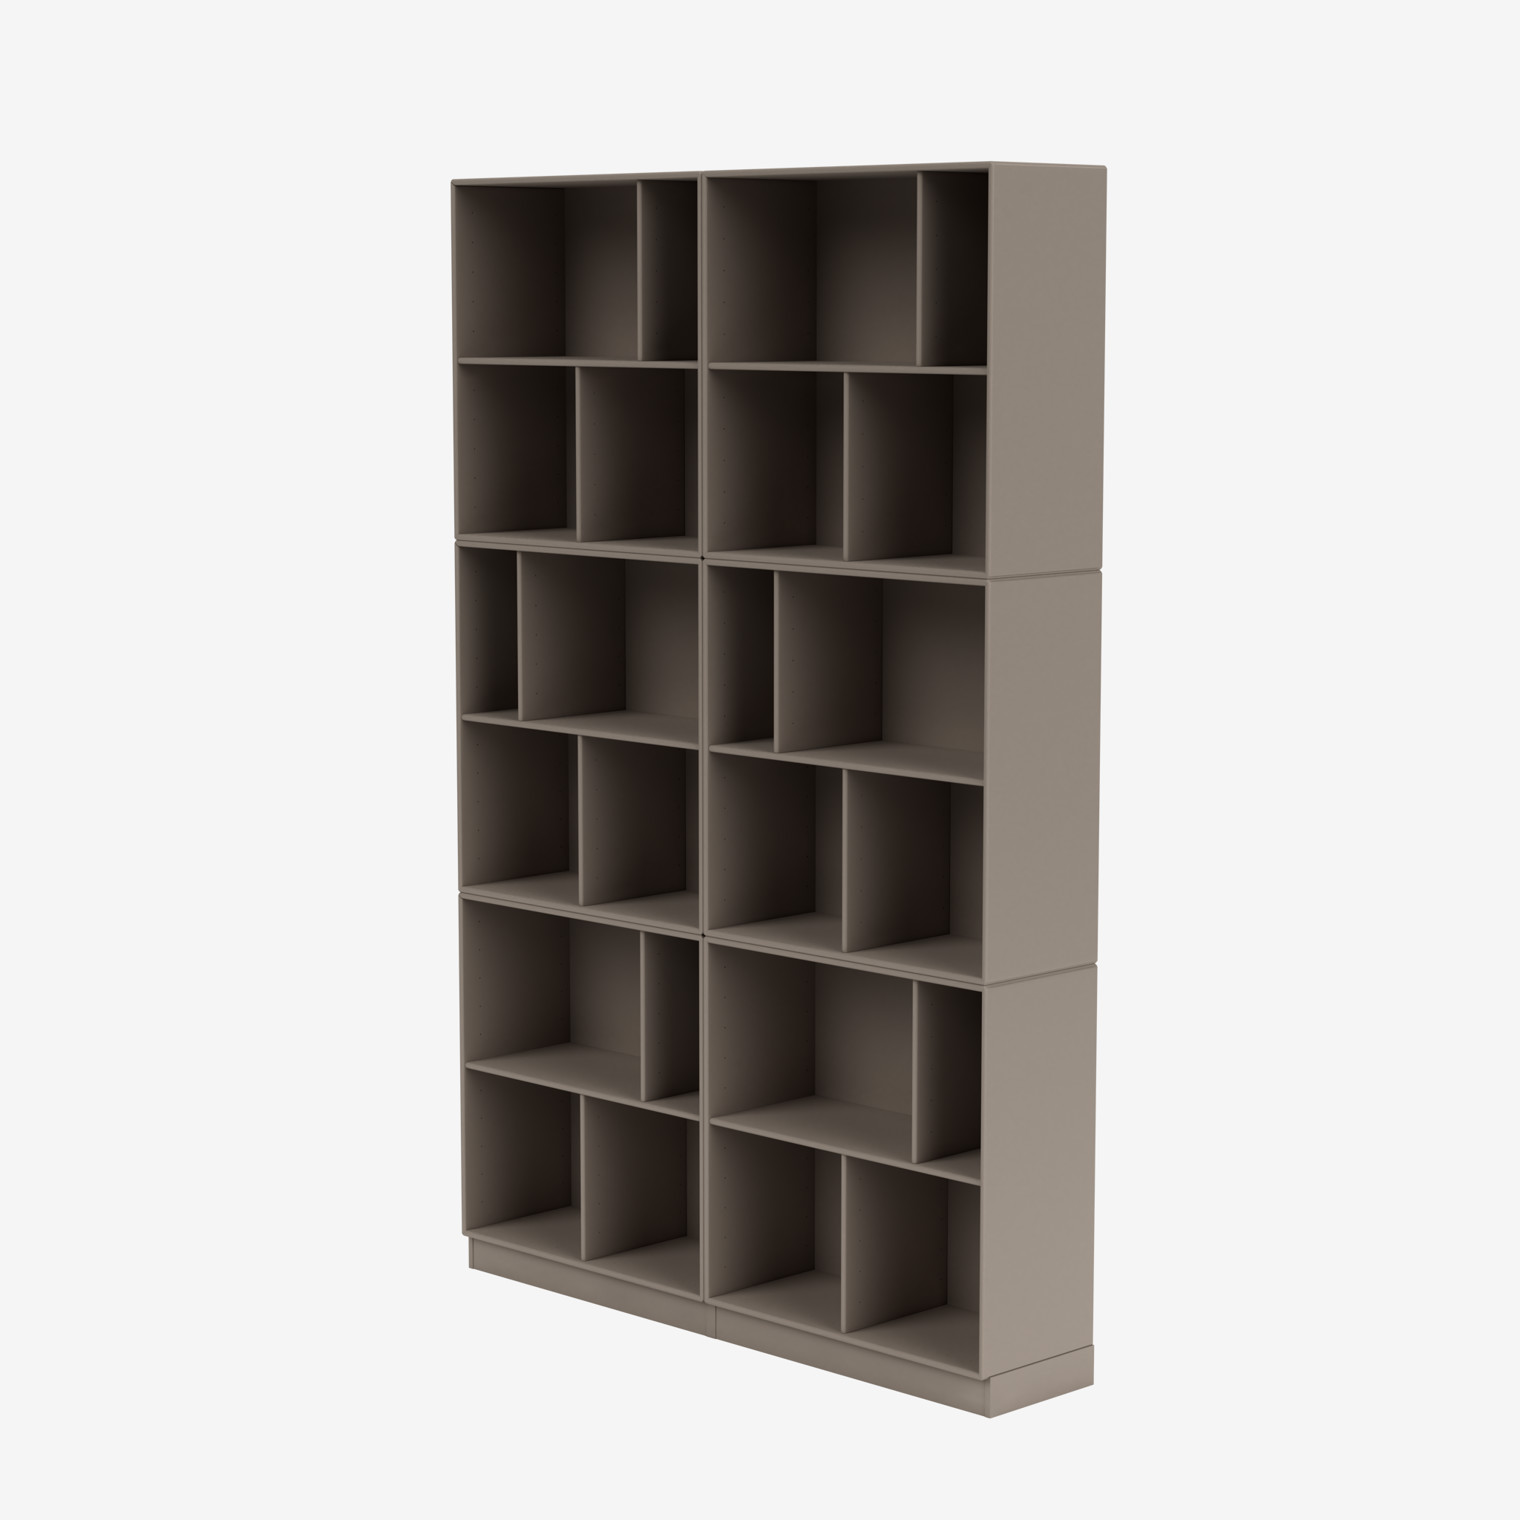 READ spacious bookshelf